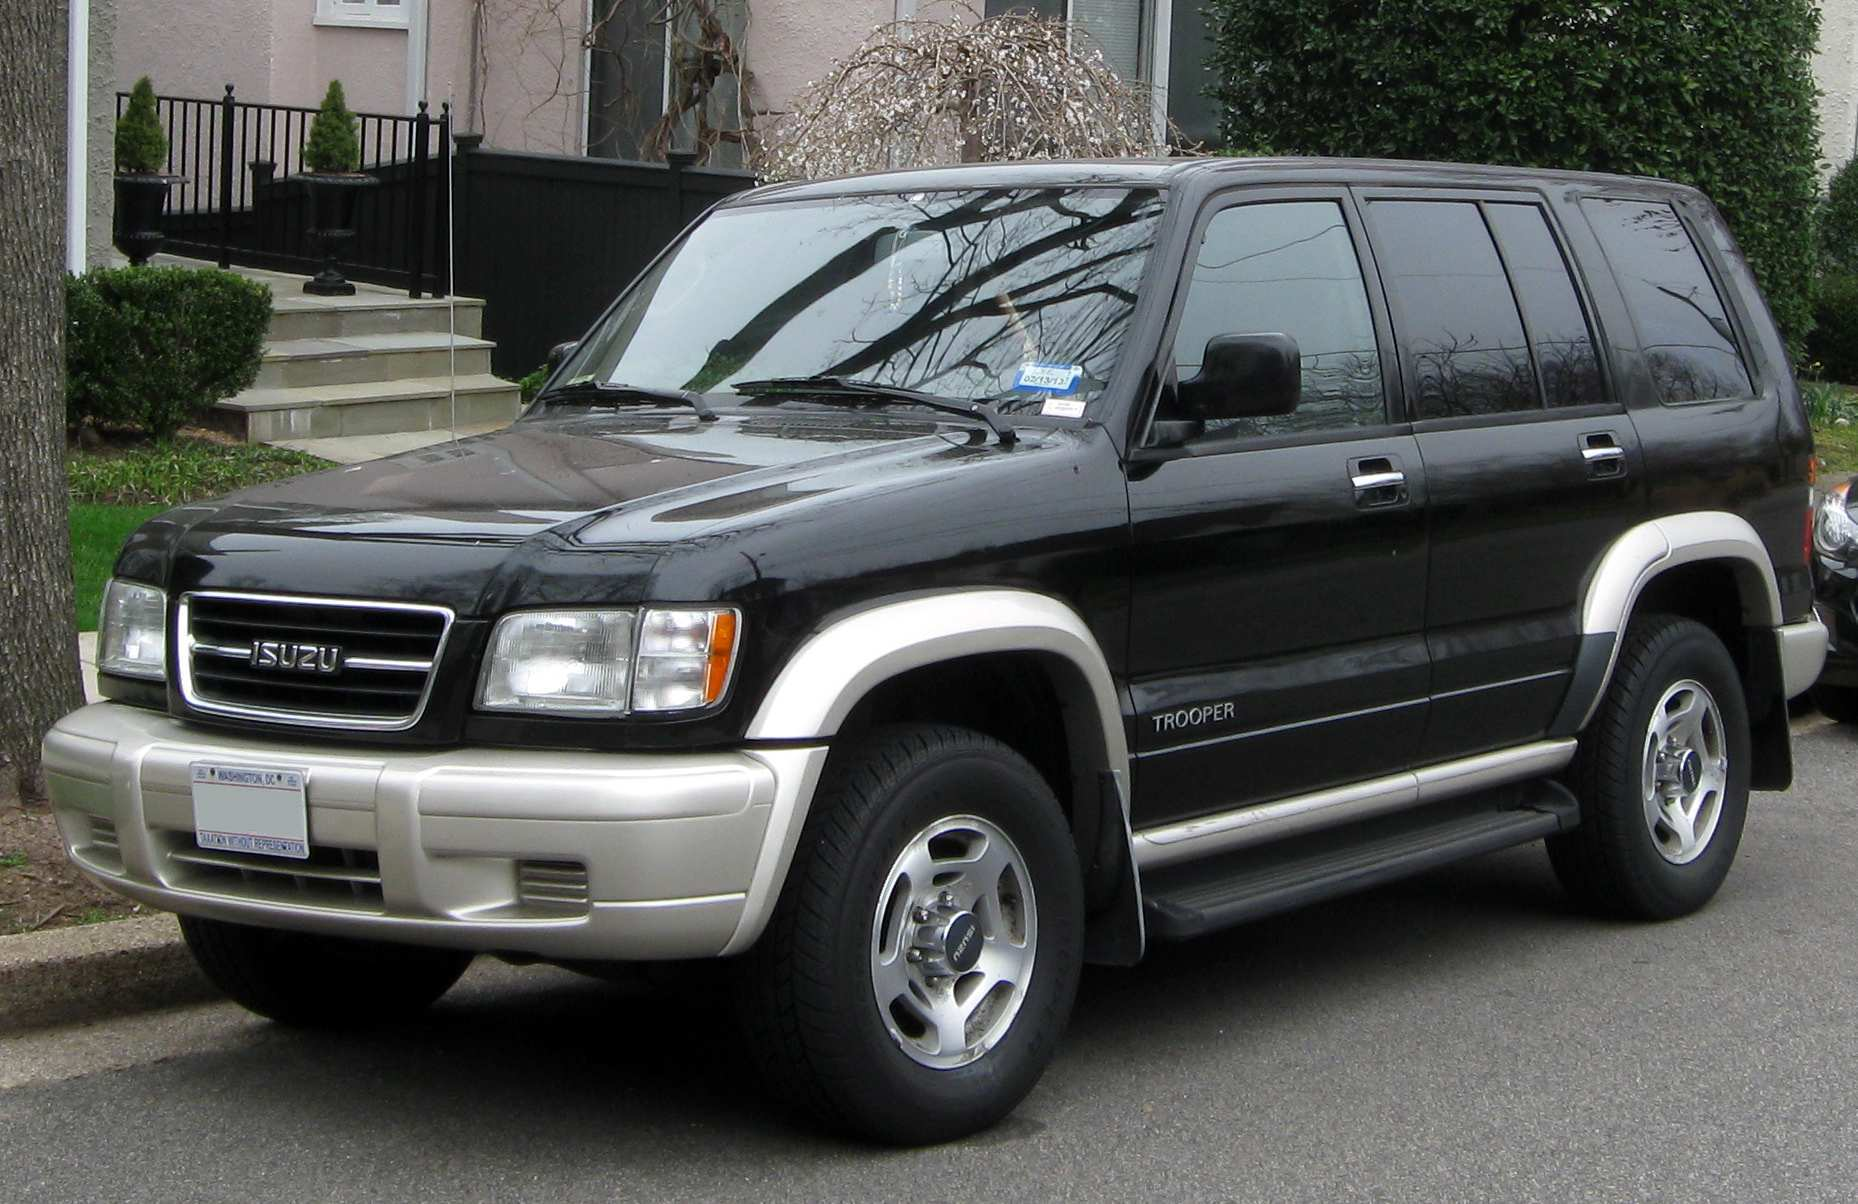 45 The 2019 Isuzu Trooper Price And Release Date